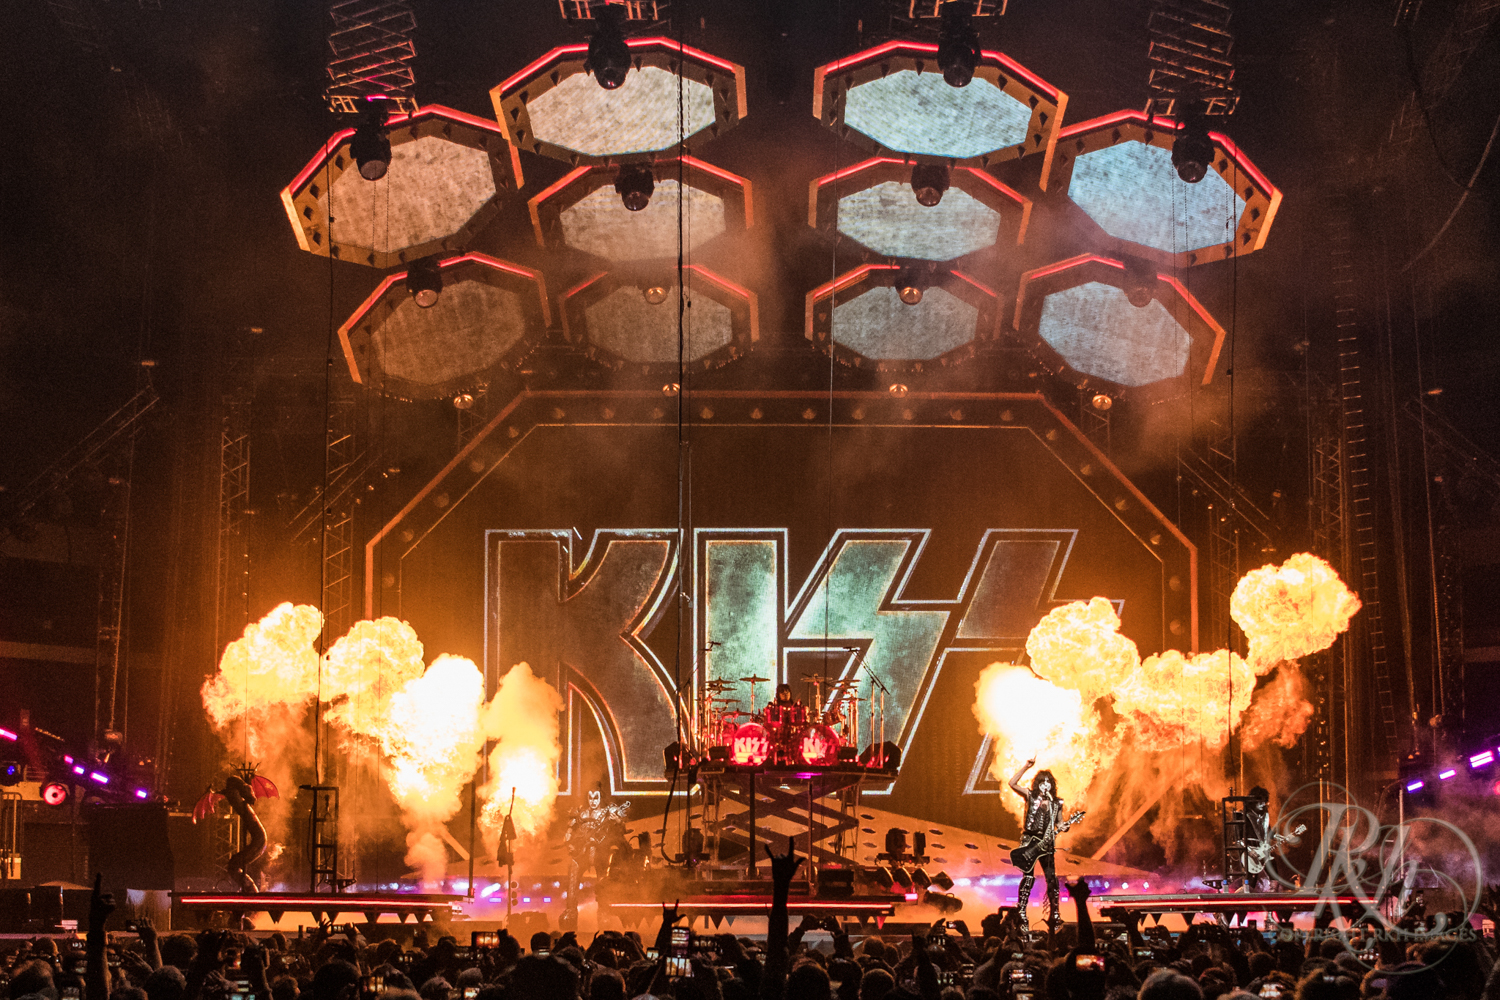 Kiss - End of the Road Tour - Target Center - Minneapolis - Concert Photography - RKH Images  (2 of 12).jpg